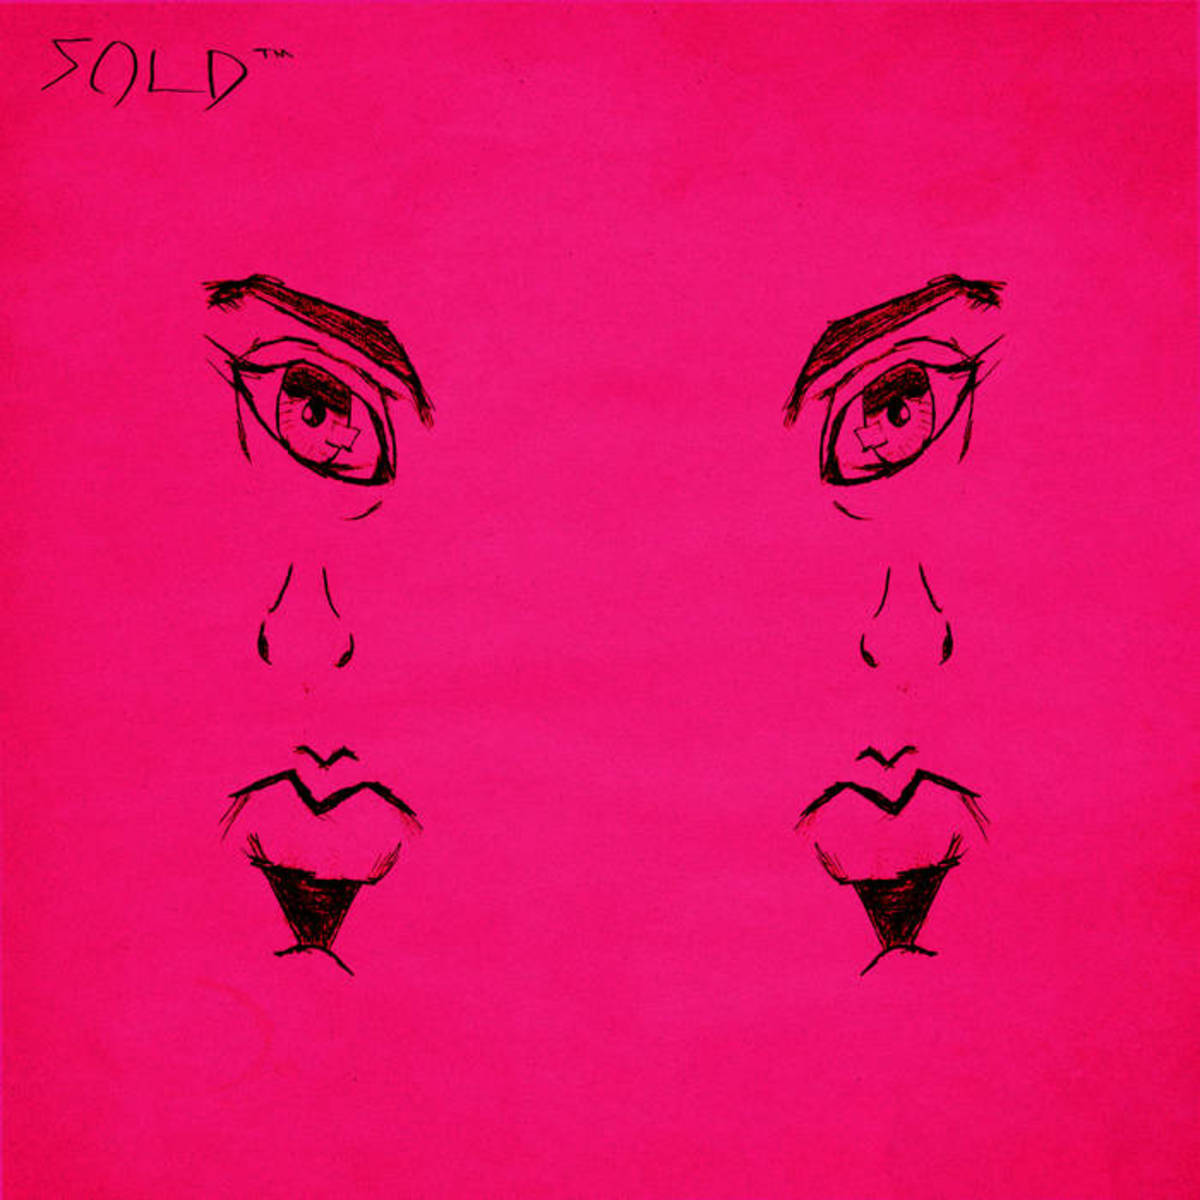 """Synth Album Review: SOLDNOTTOLD, """"Fascination"""""""